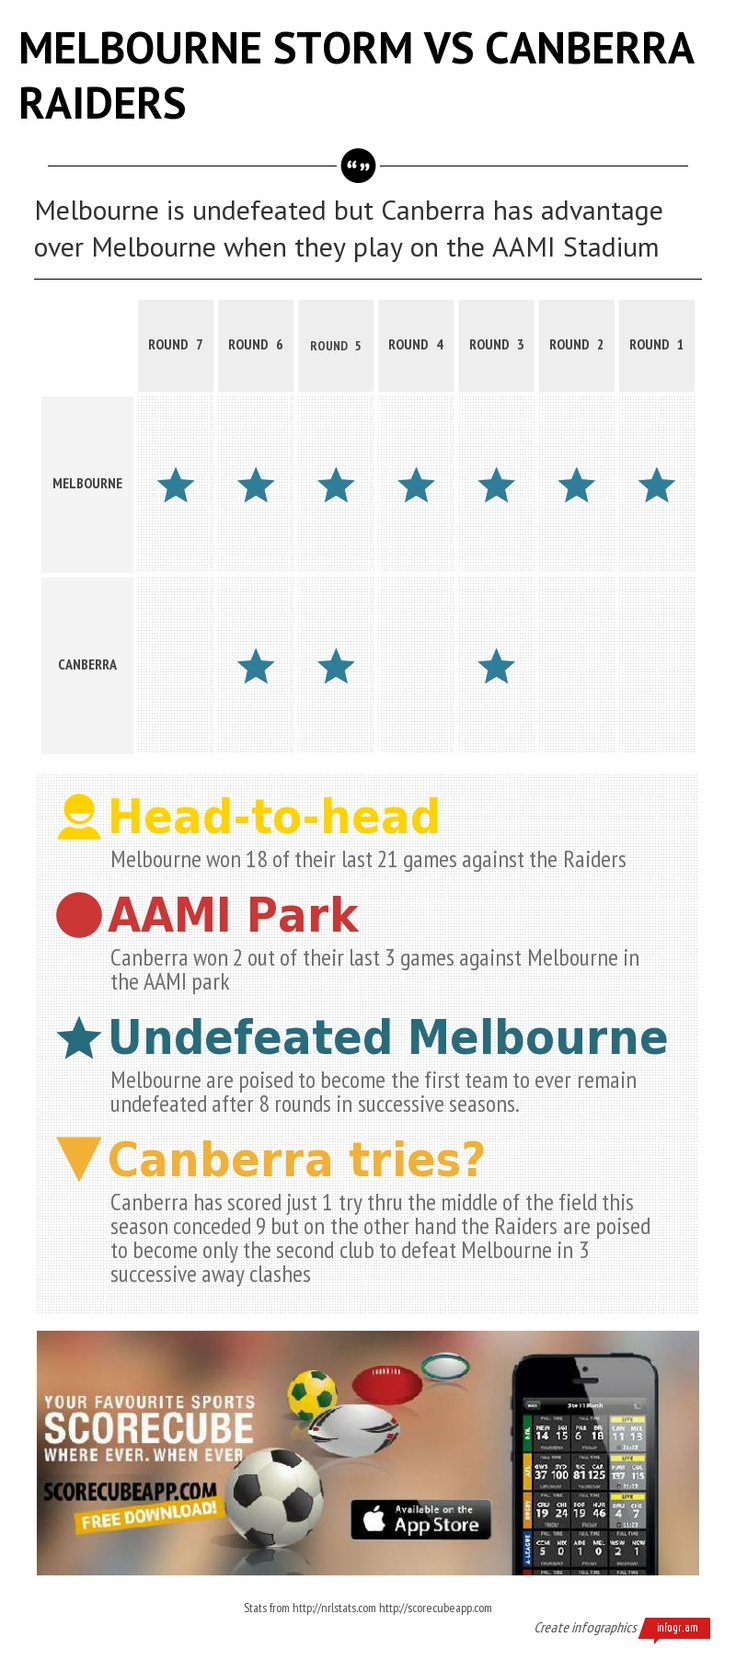 NRL - National Rugby LeaguePreview of theMelbourne StormvsCanberra Raidersgame tomorrow 4 May 2013.Download the ScoreCube app to be updated on scores, stats and local schedule of the NRL games.http://scorecubeapp.com/  Download the app here: itunes download link  Follow us on Twitter: @scorecubeapp  We are also on Facebook: https://www.facebook.com/scorecube